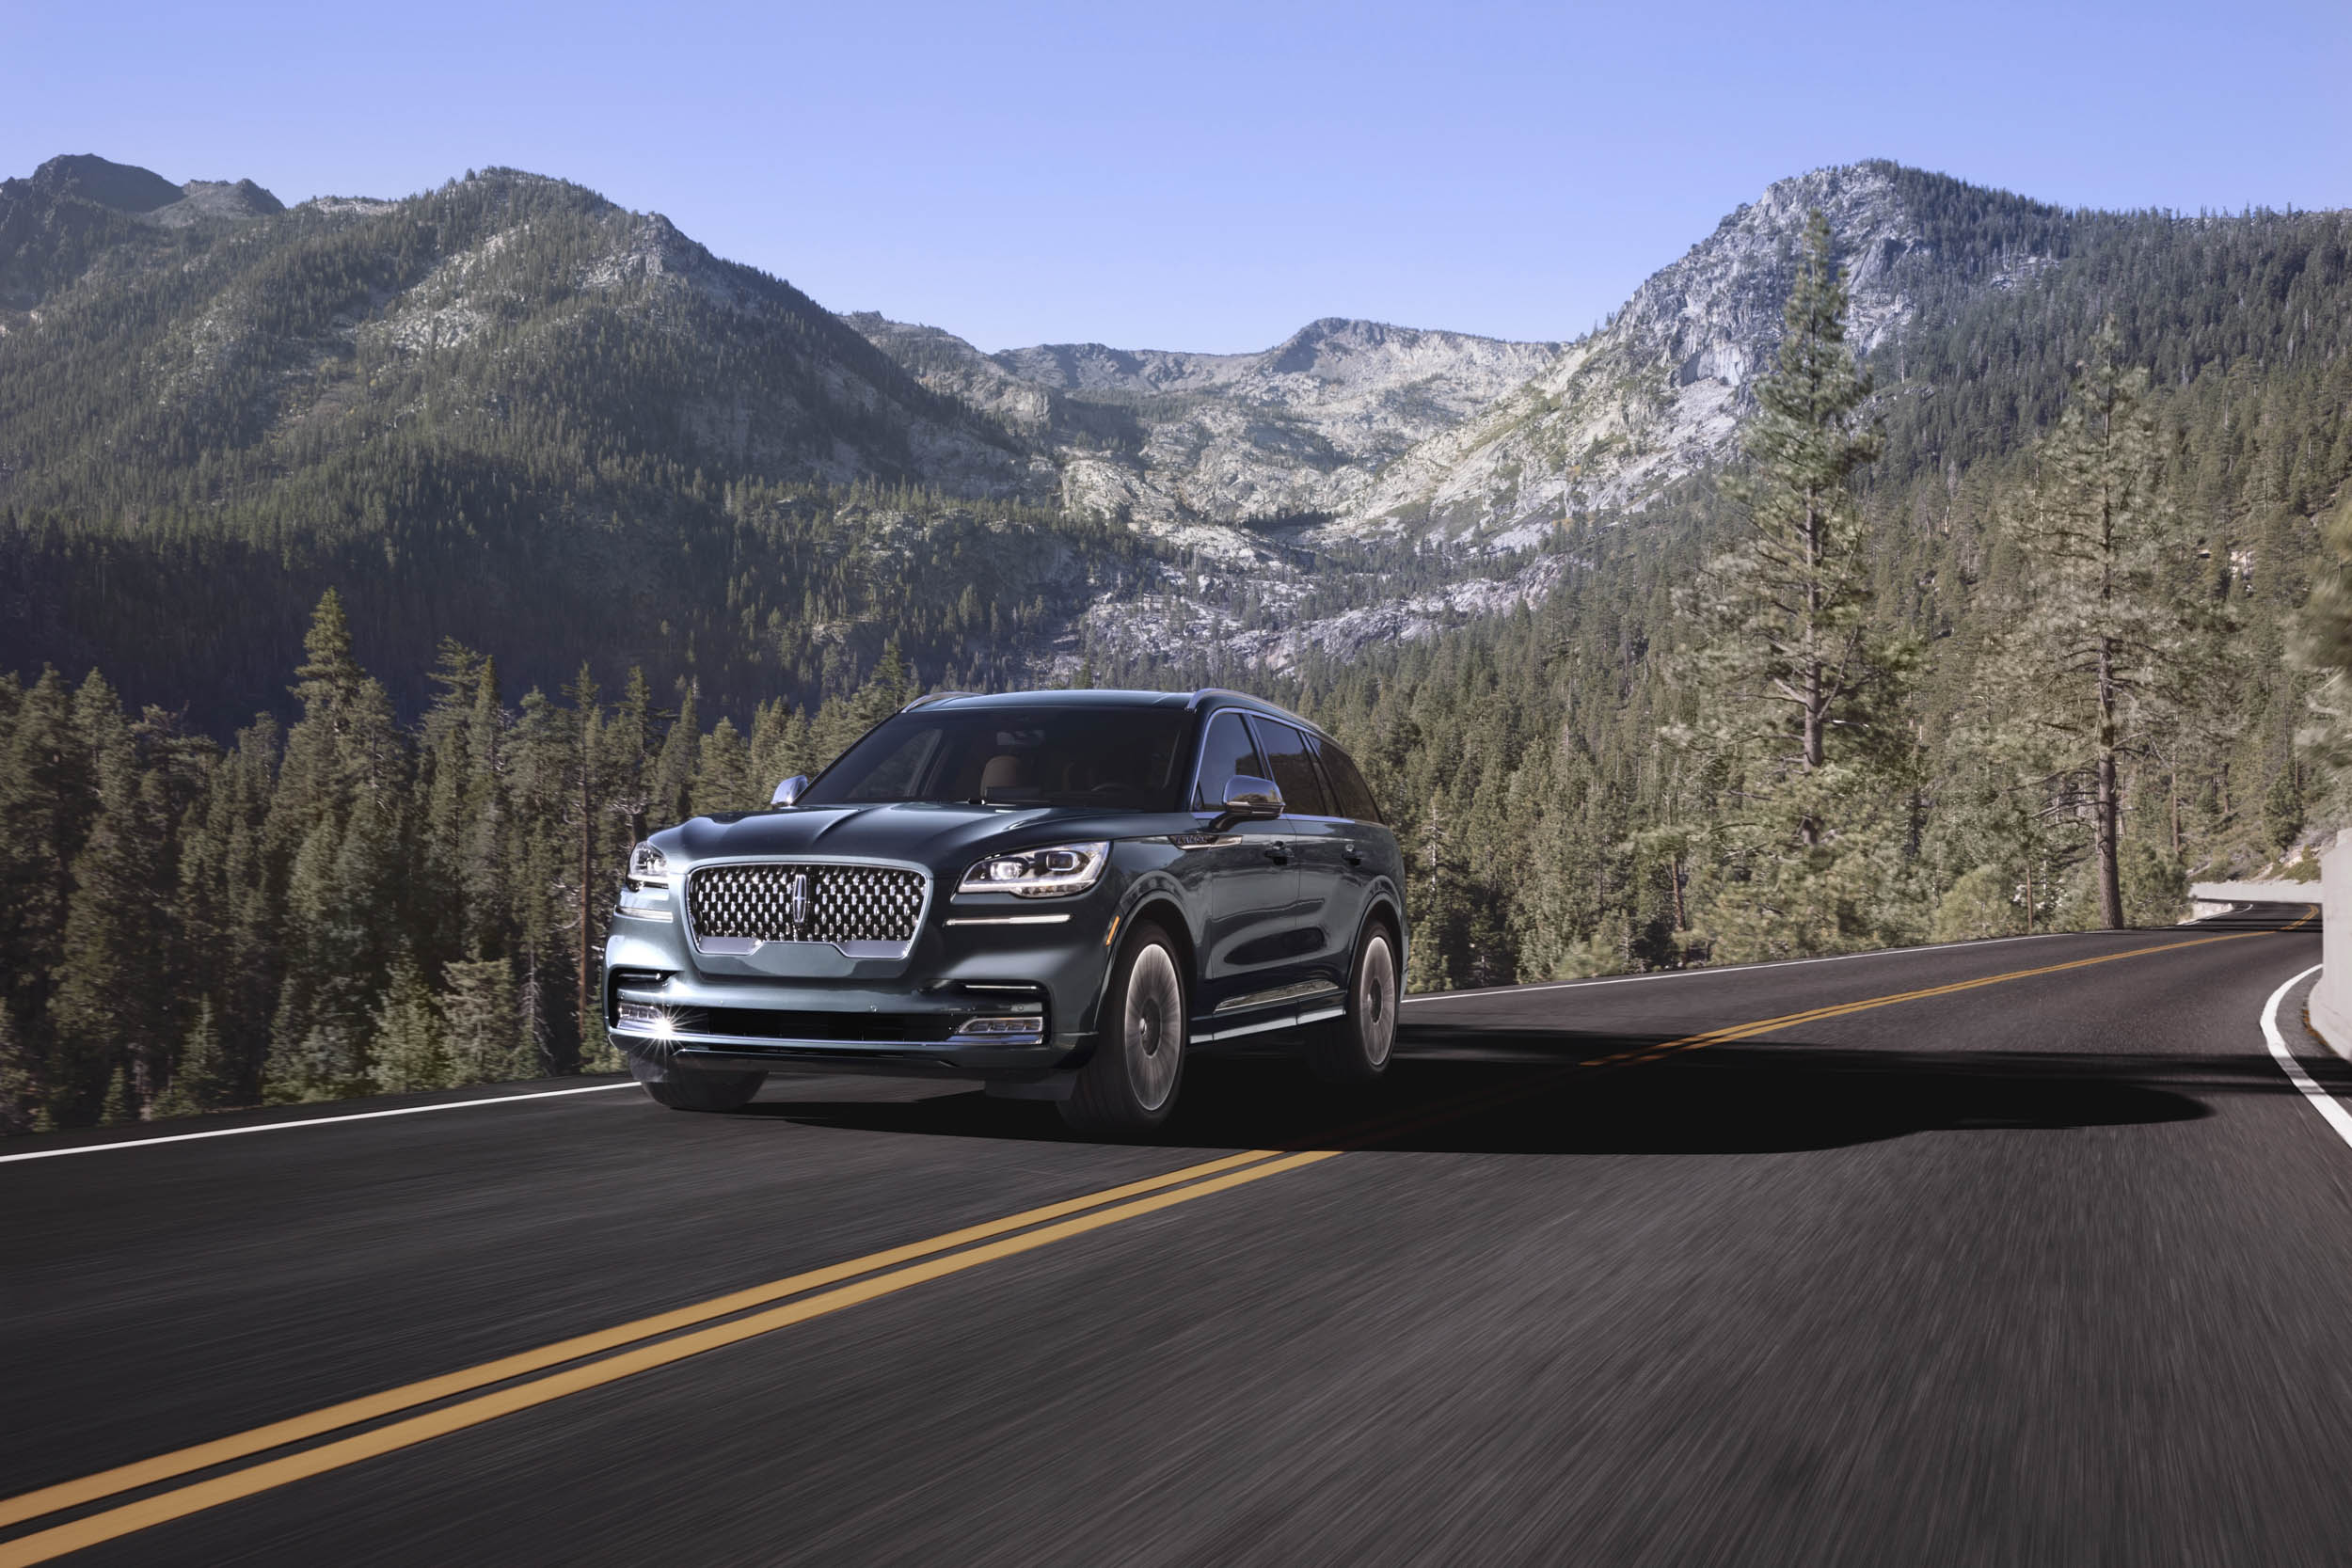 2020 Lincoln Aviator front 3/4